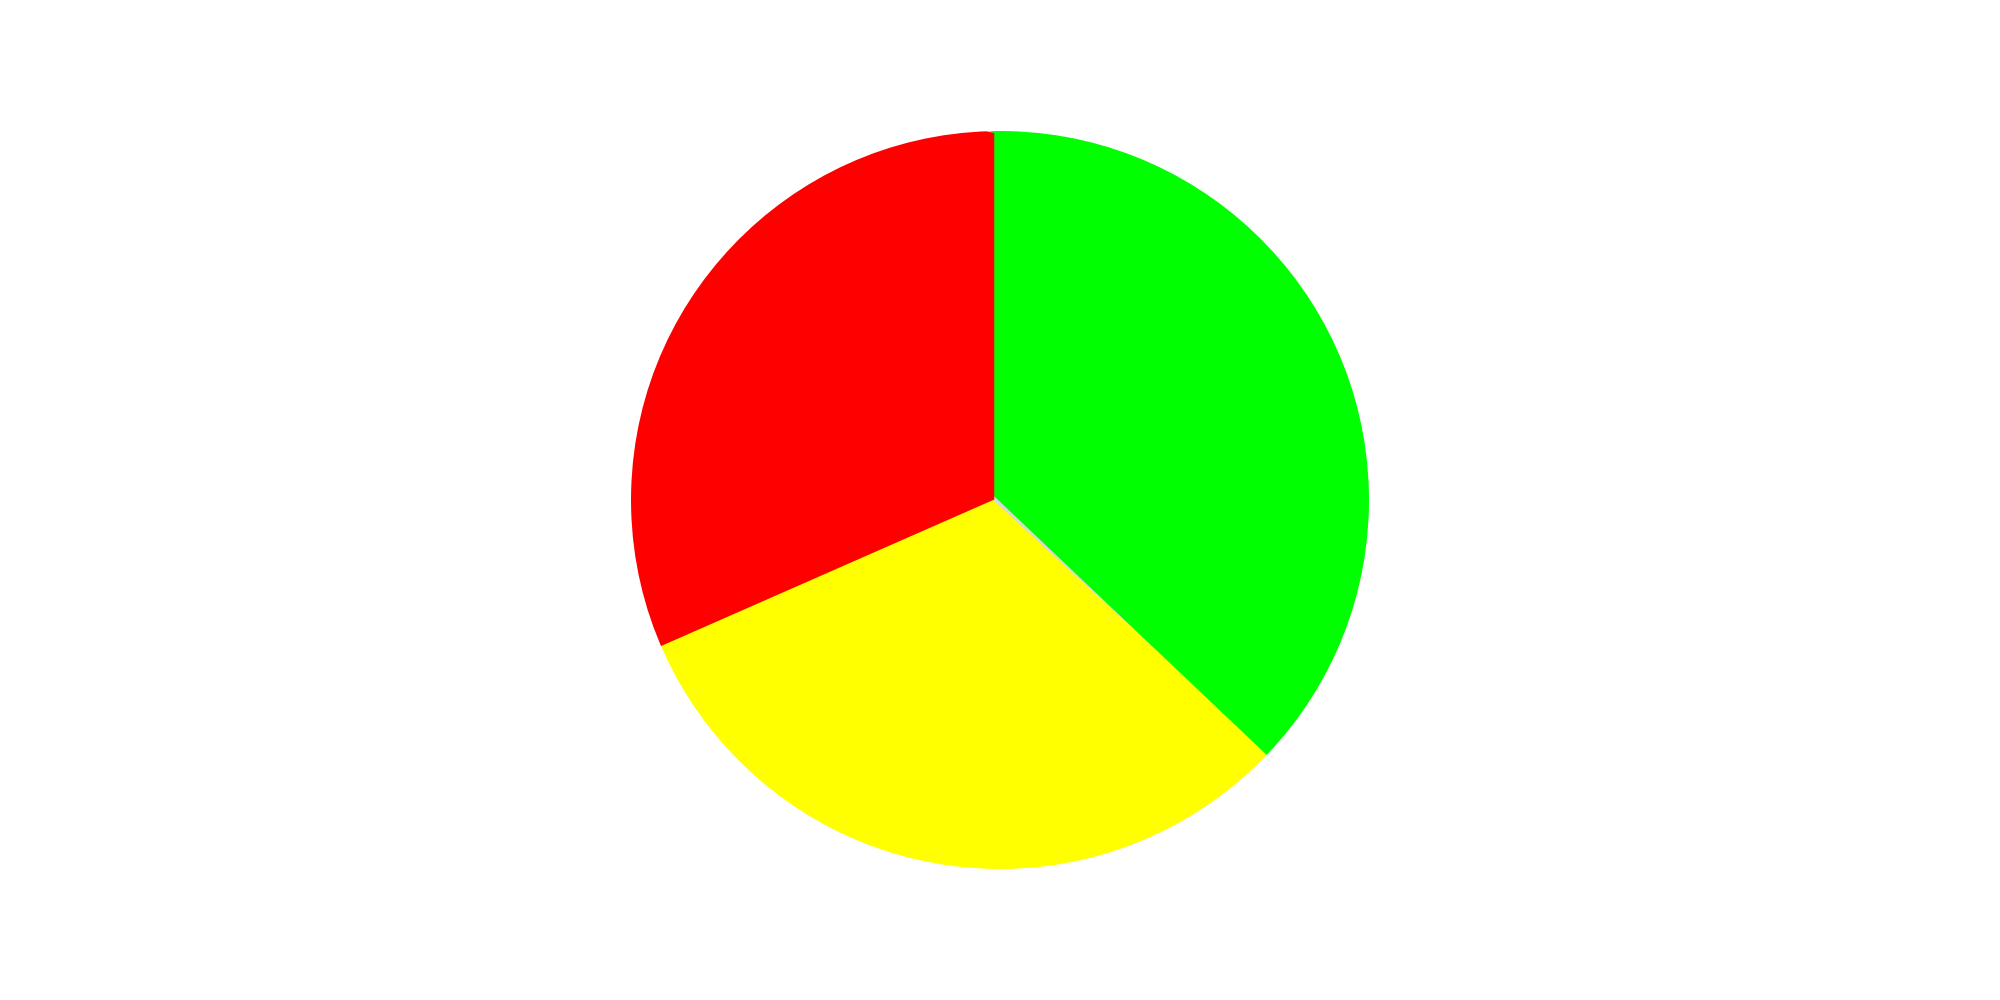 Css conic gradient css tricks a mockup illustrating a conic gradient emulating a simple three color pie chart ccuart Gallery